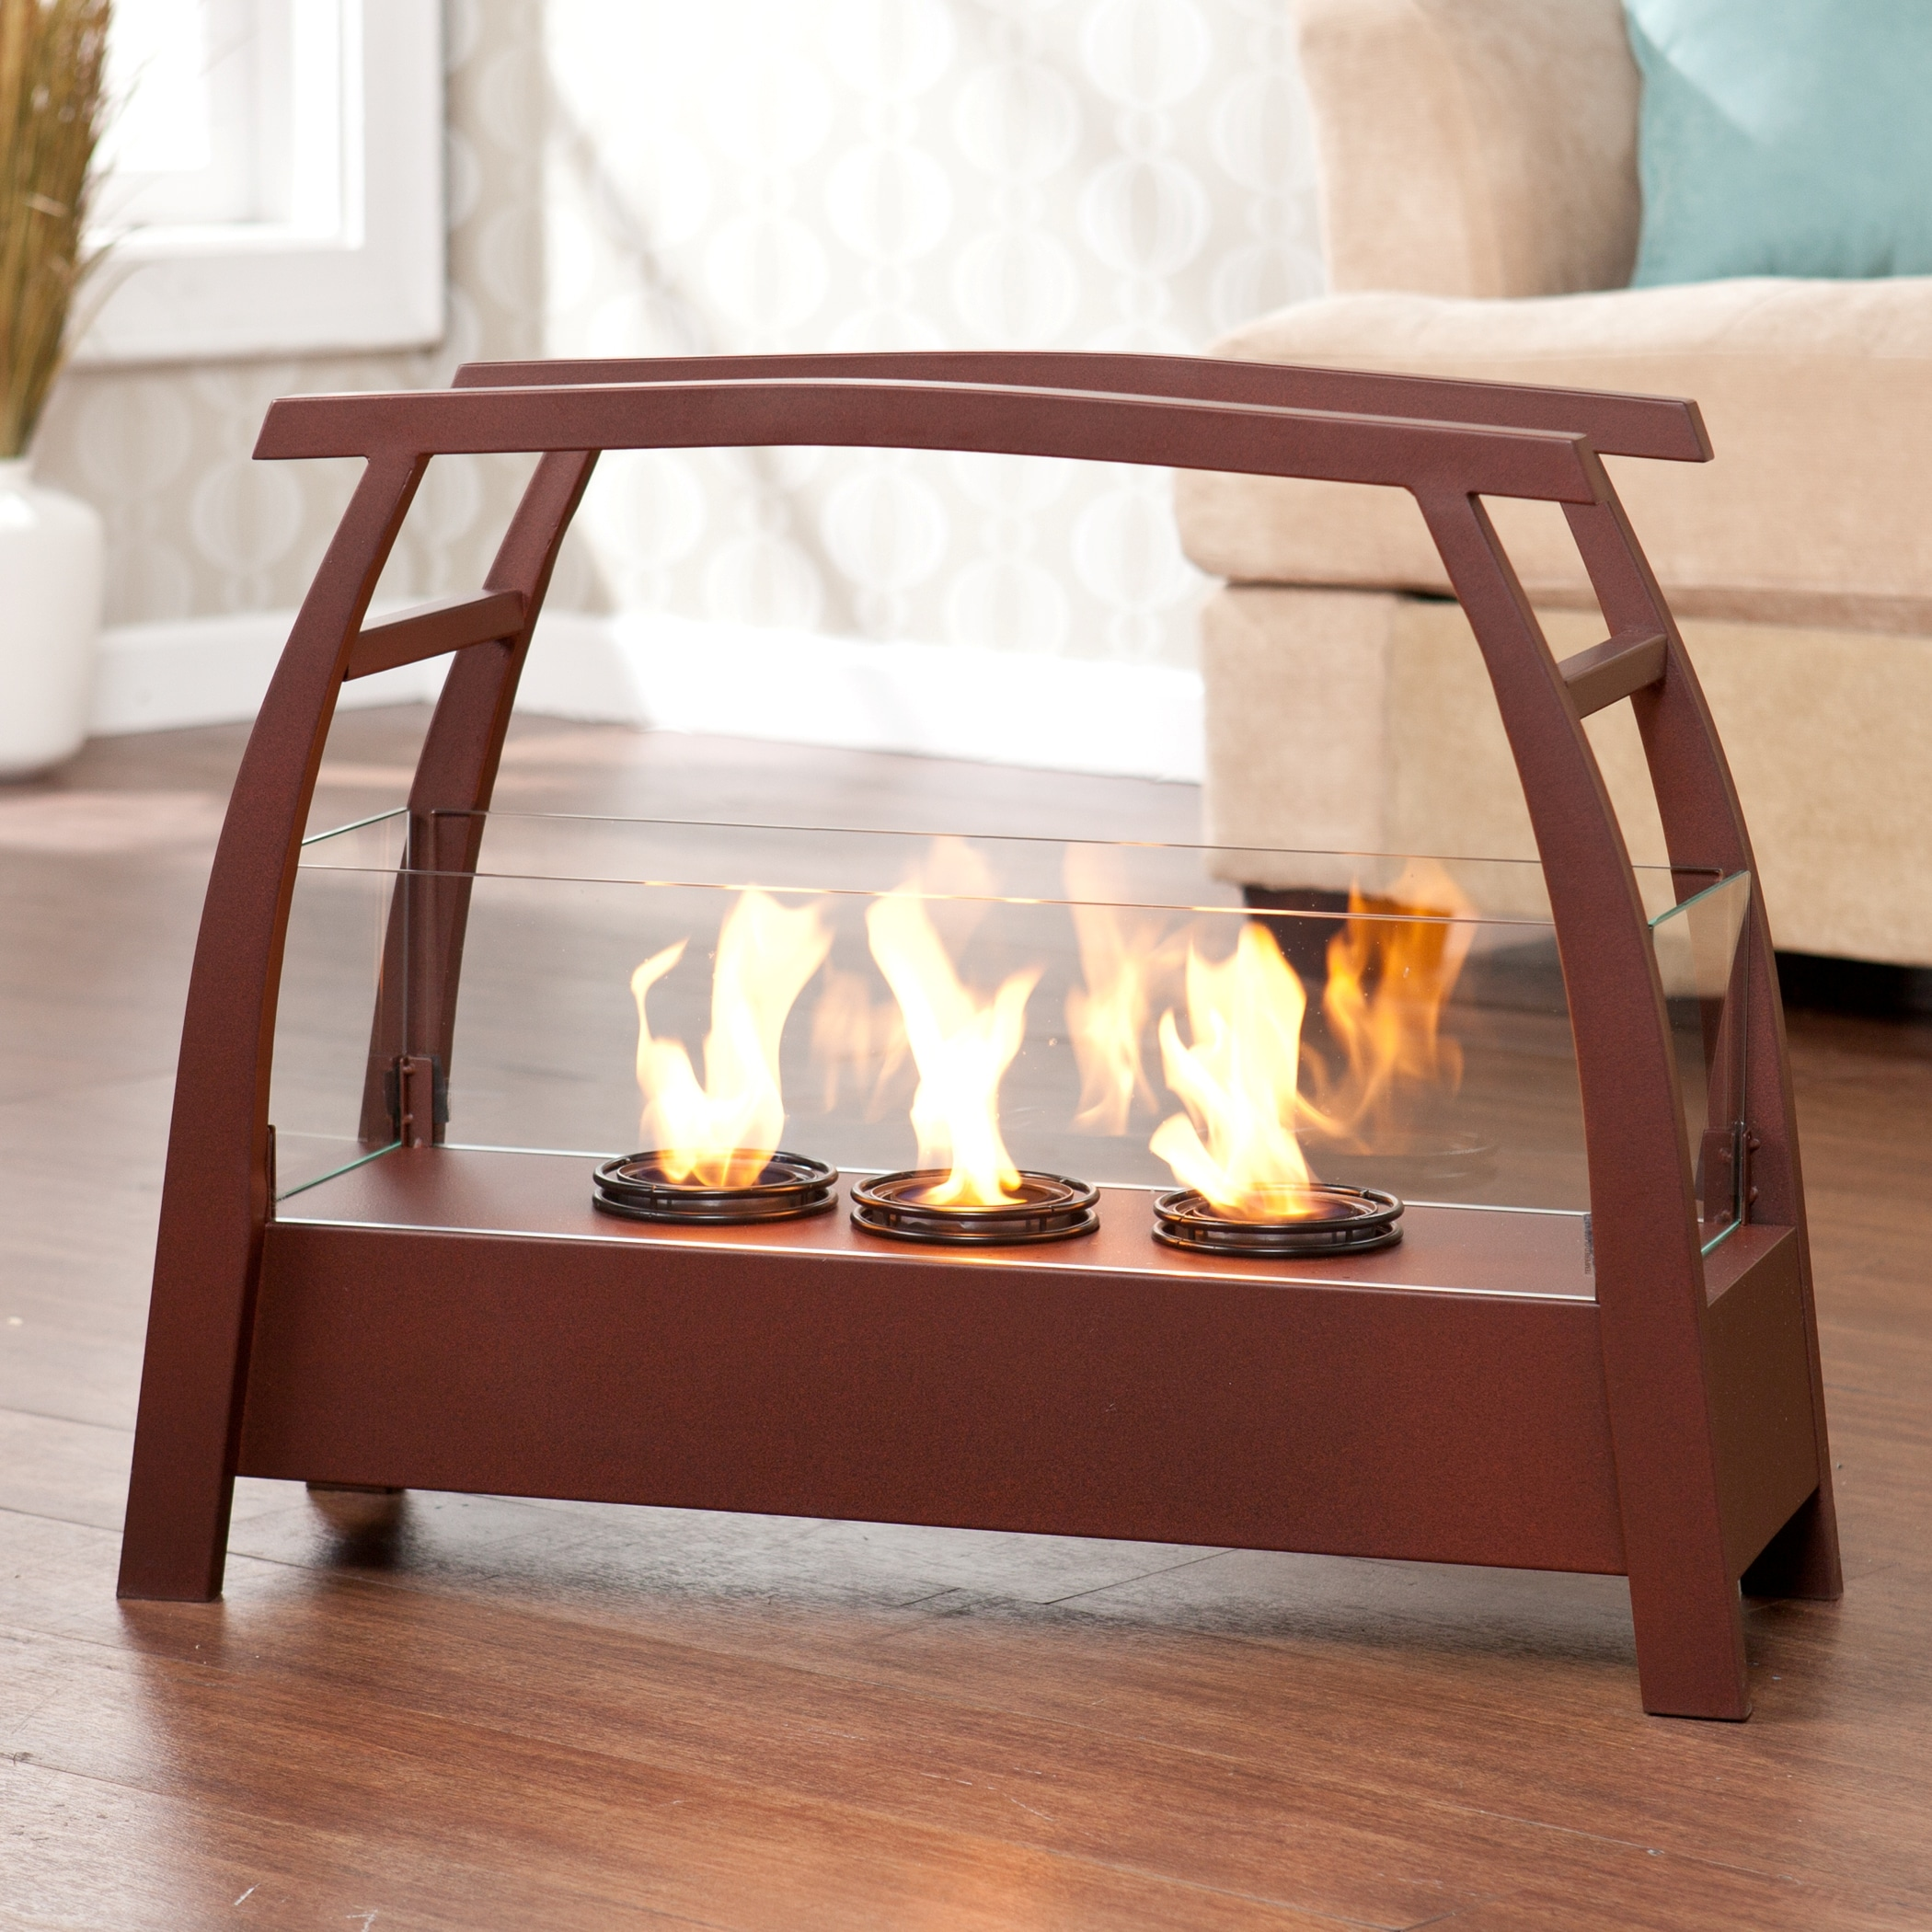 Upton Home Rustic Red Portable Indoor/ Outdoor Gel Fuel Fireplace